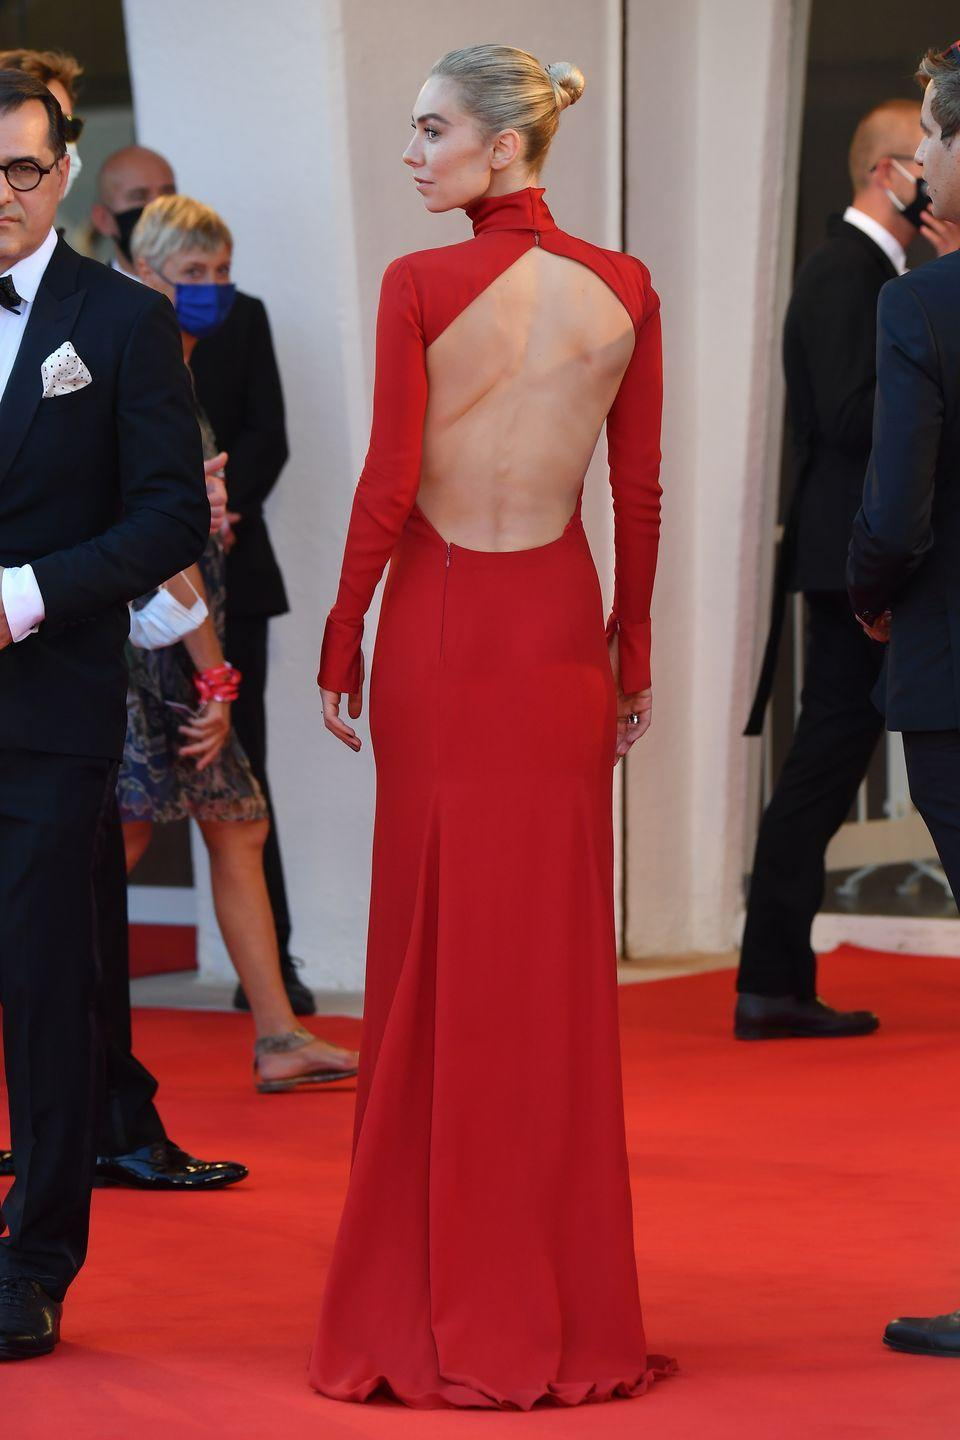 """<p>Kirby stunned in a red backless gown for the Venice Film Festival premiere of <em>Pieces of a Woman; </em>she earned <a href=""""https://www.indiewire.com/2020/09/venice-film-festival-2020-winners-list-1234585982/"""" rel=""""nofollow noopener"""" target=""""_blank"""" data-ylk=""""slk:the festival's Best Actress award"""" class=""""link rapid-noclick-resp"""">the festival's Best Actress award</a> for her role in the project.</p>"""